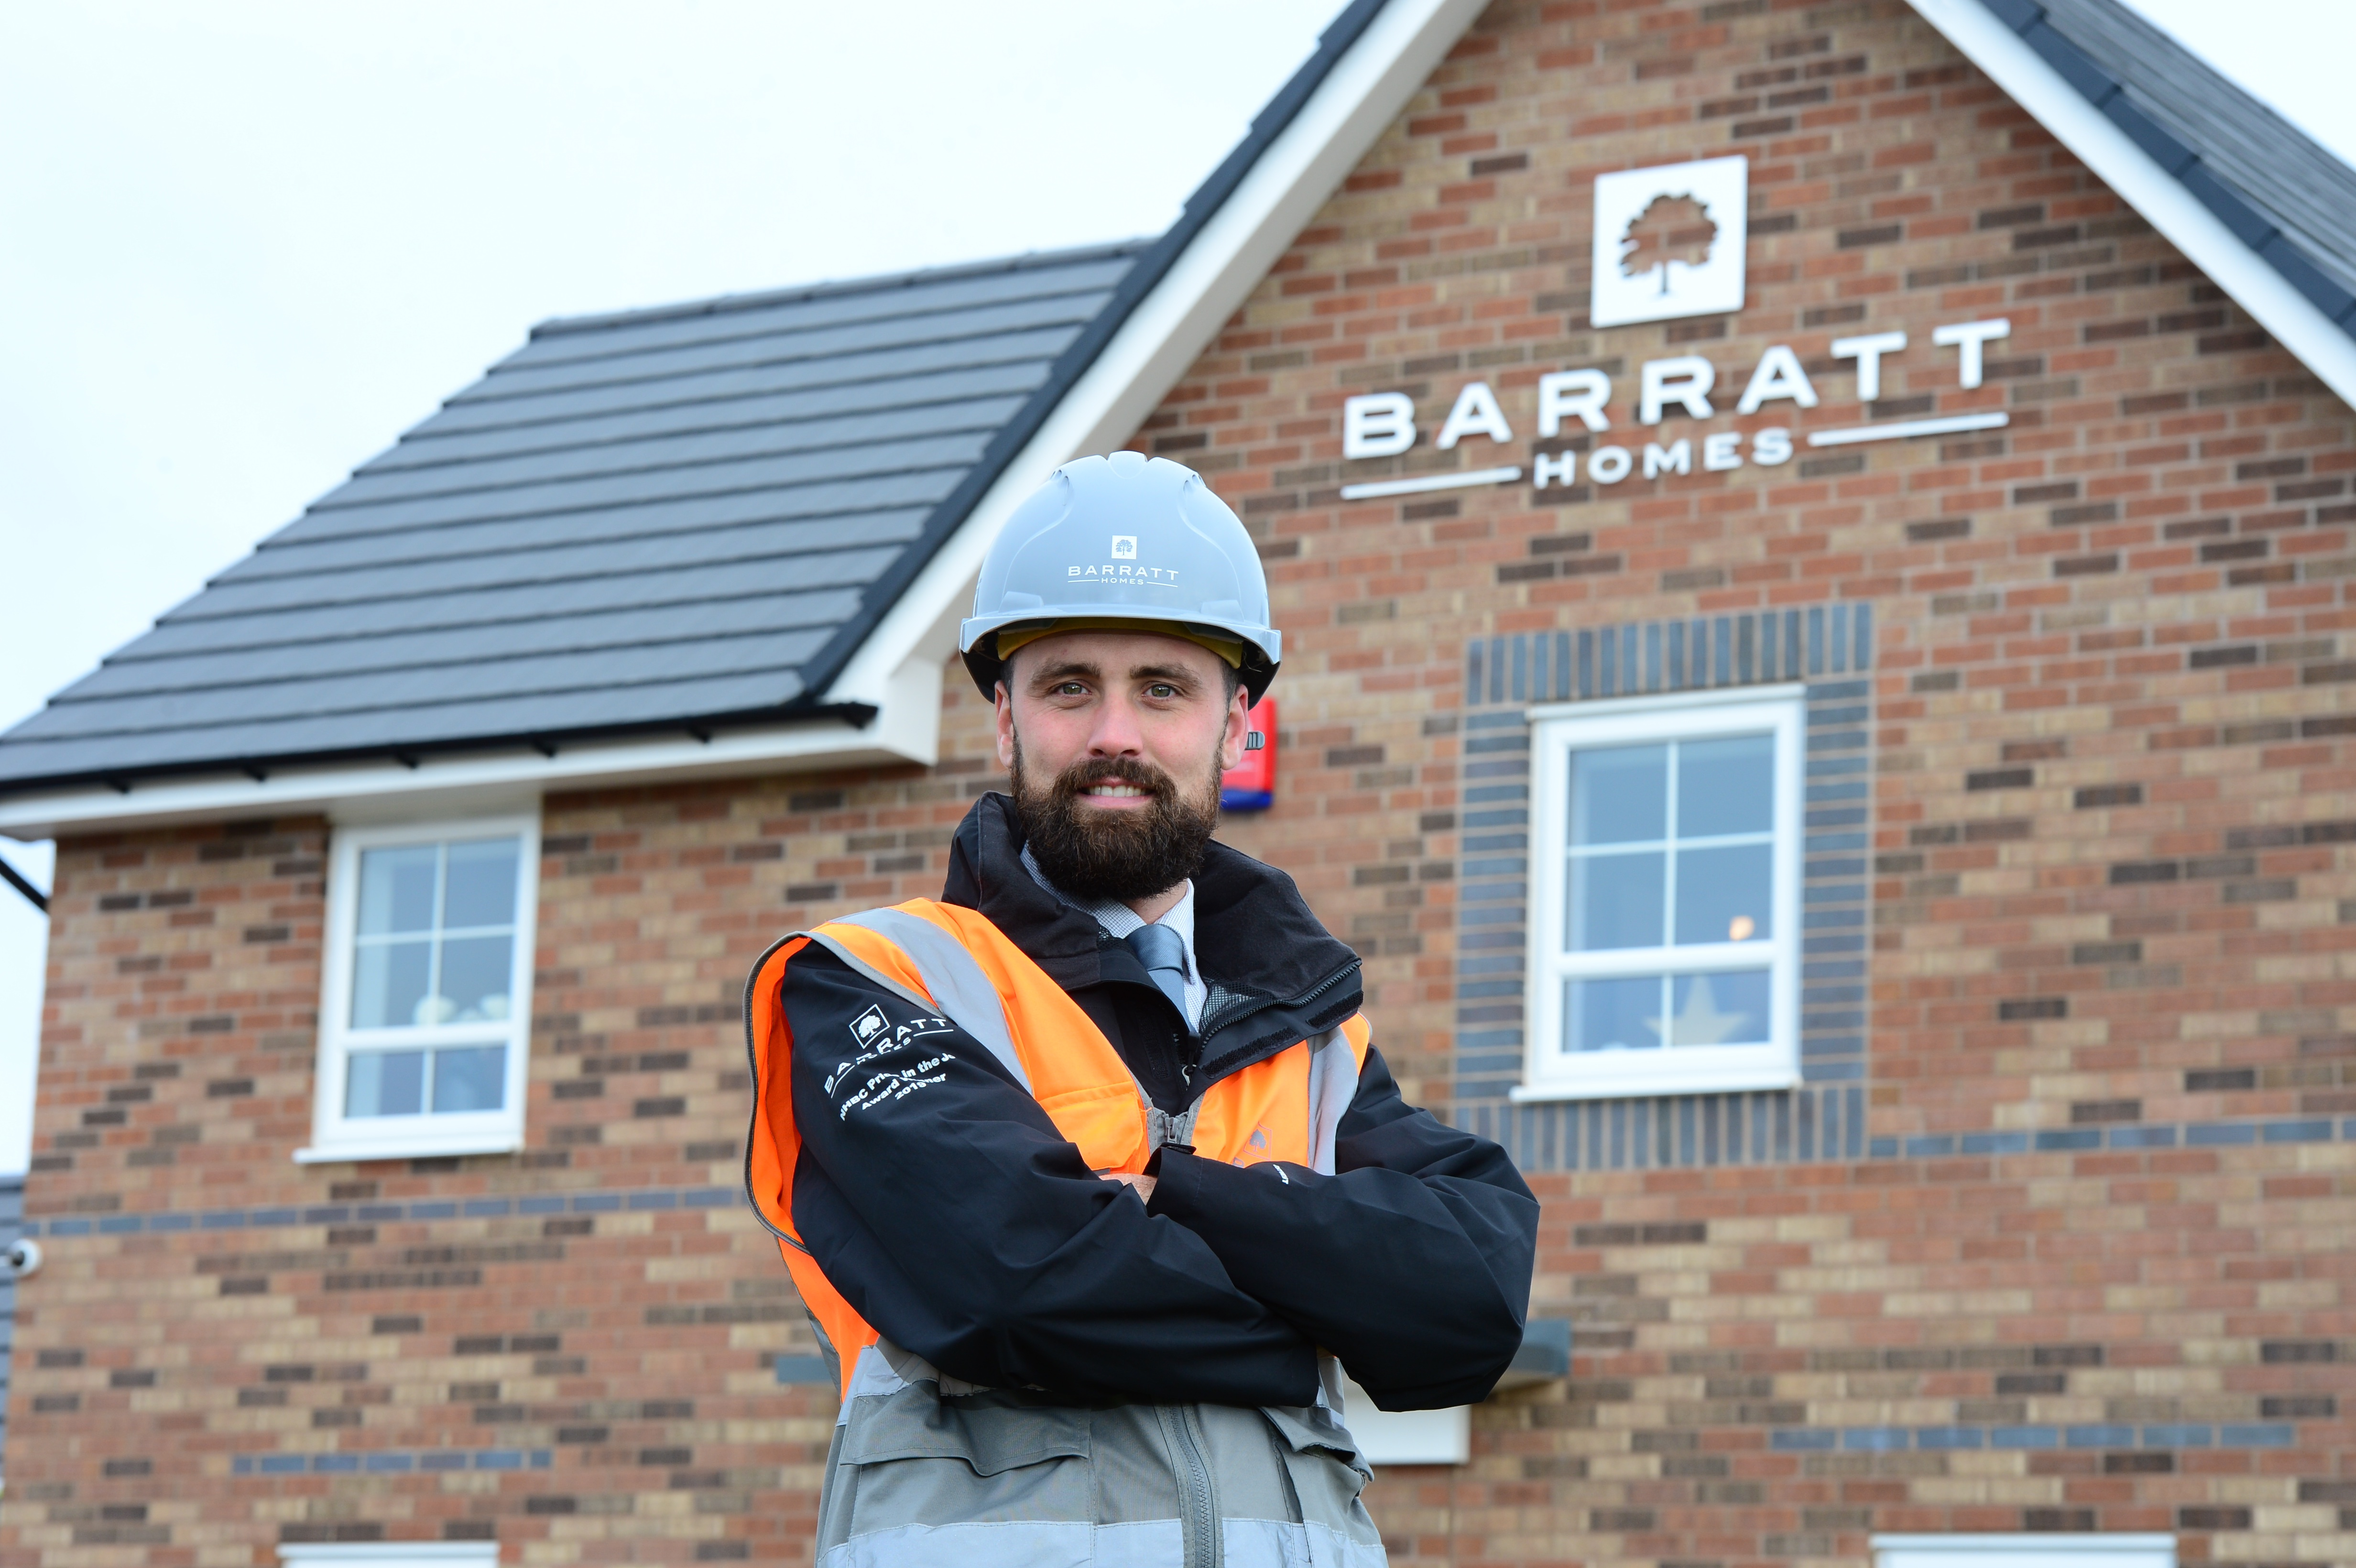 BARRATT HOMES SITE MANAGERS IN NOTTINGHAMSHIRE RANKED AS COUNTRY'S BEST FOR QUALITY